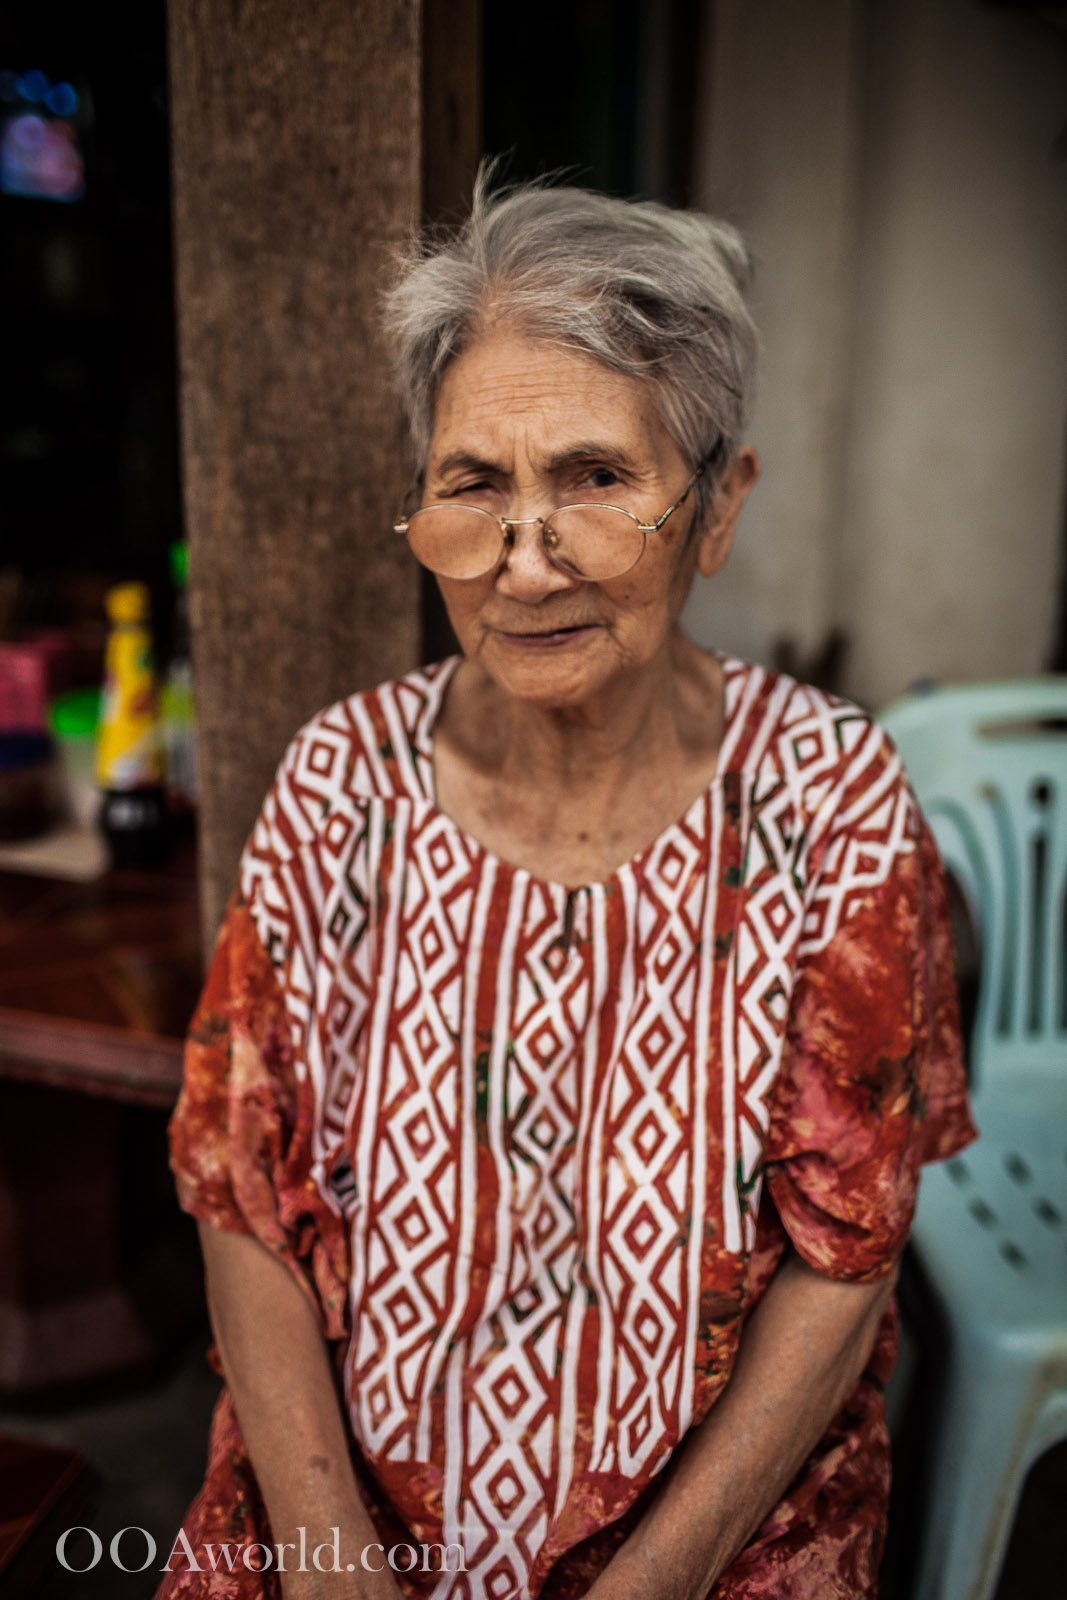 Luang Prabang Photo Portrait Lady Photo Ooaworld